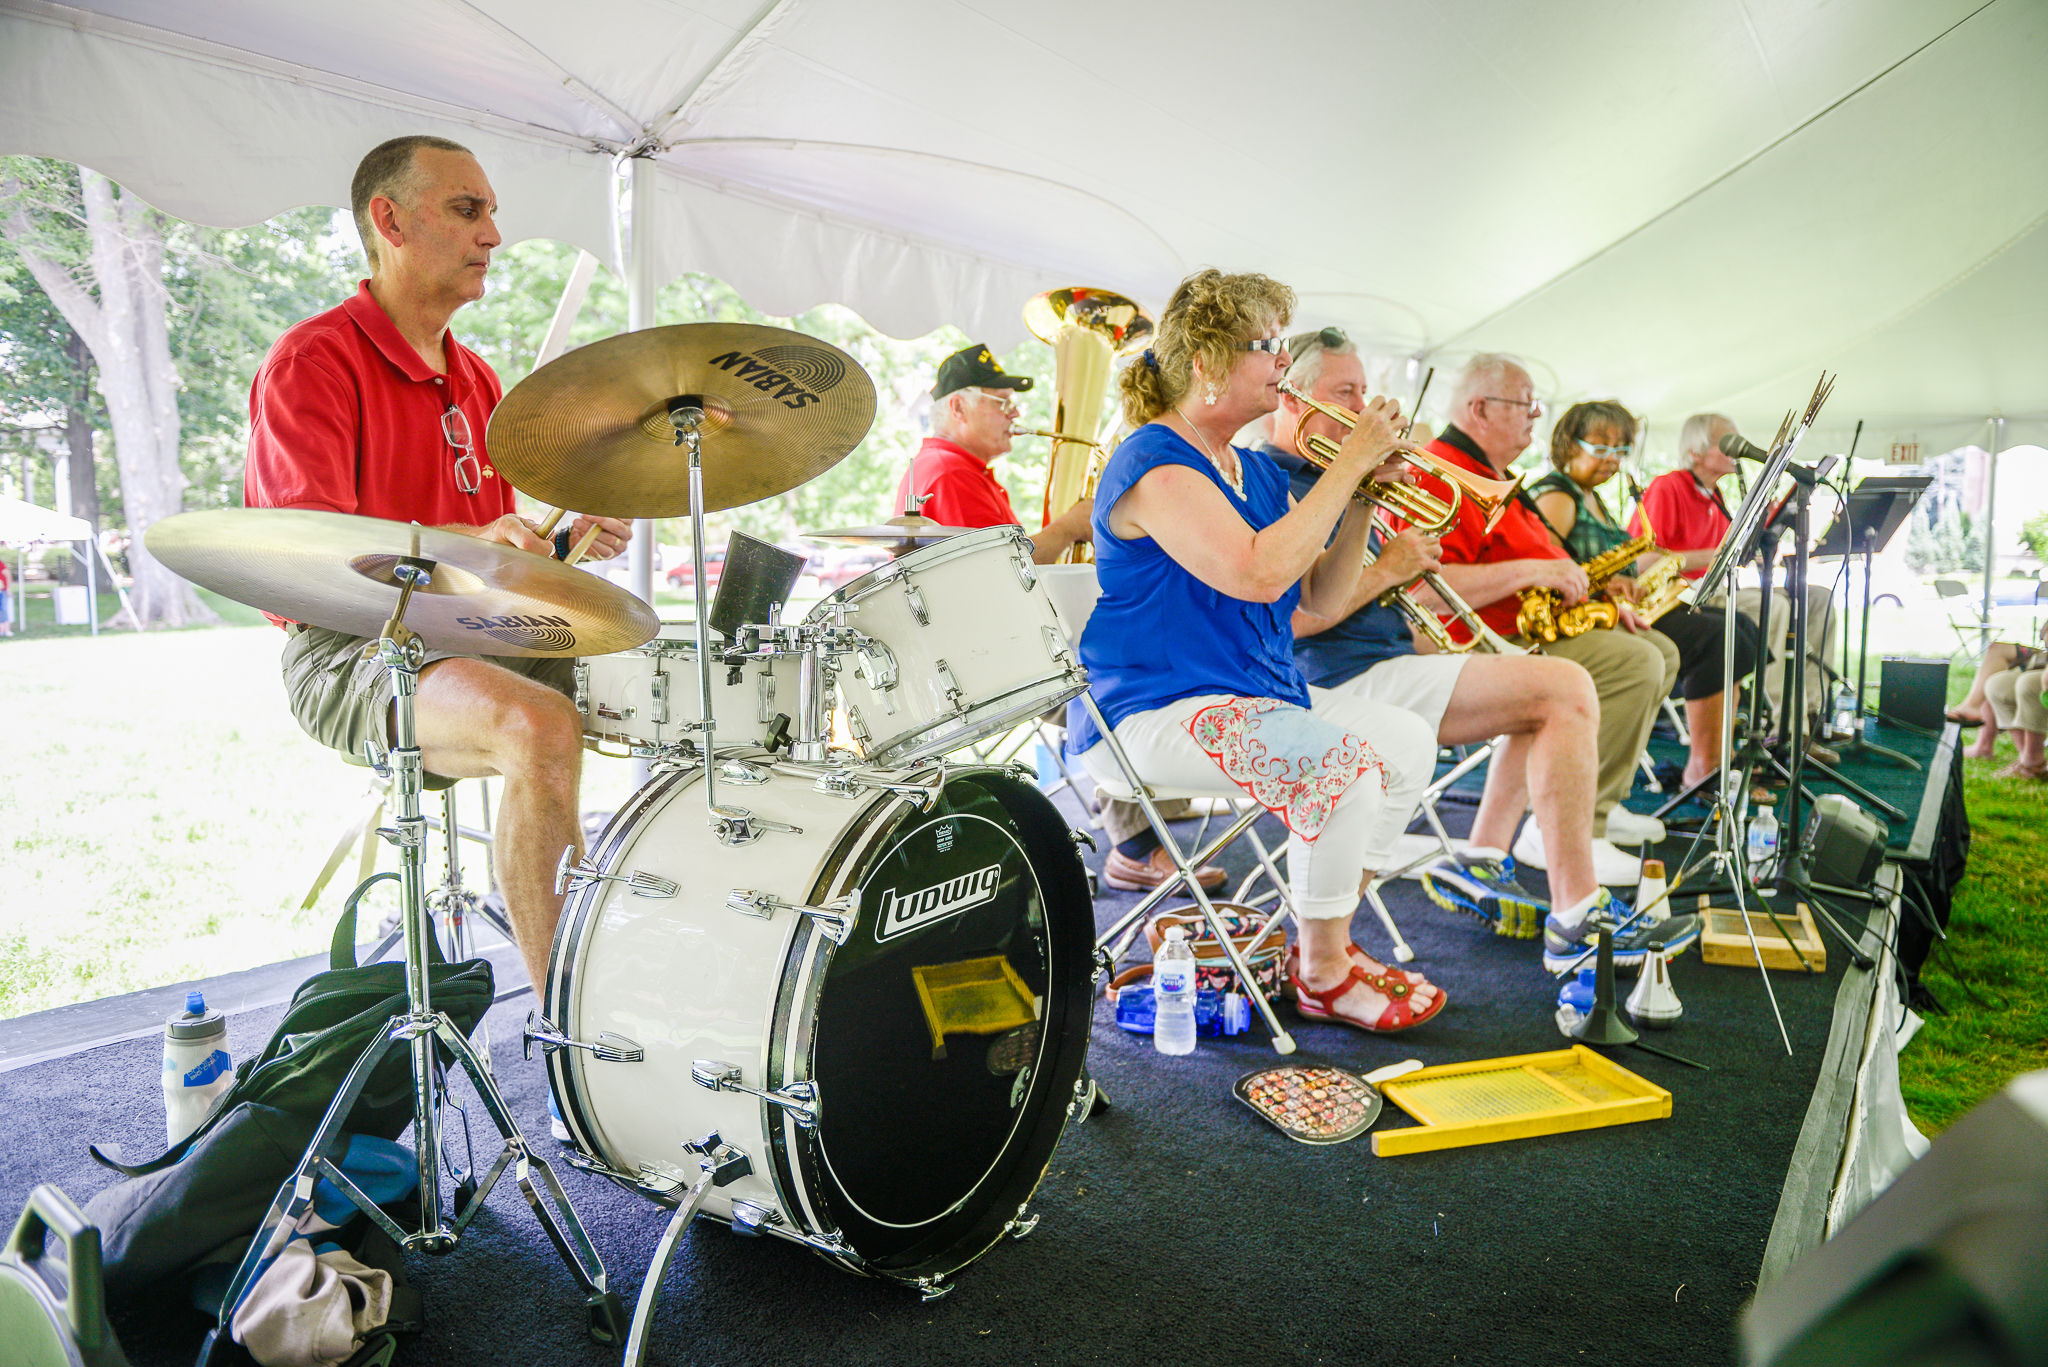 photograph of a live band performing at a presidential site event. band includes a drummer and a brass section.